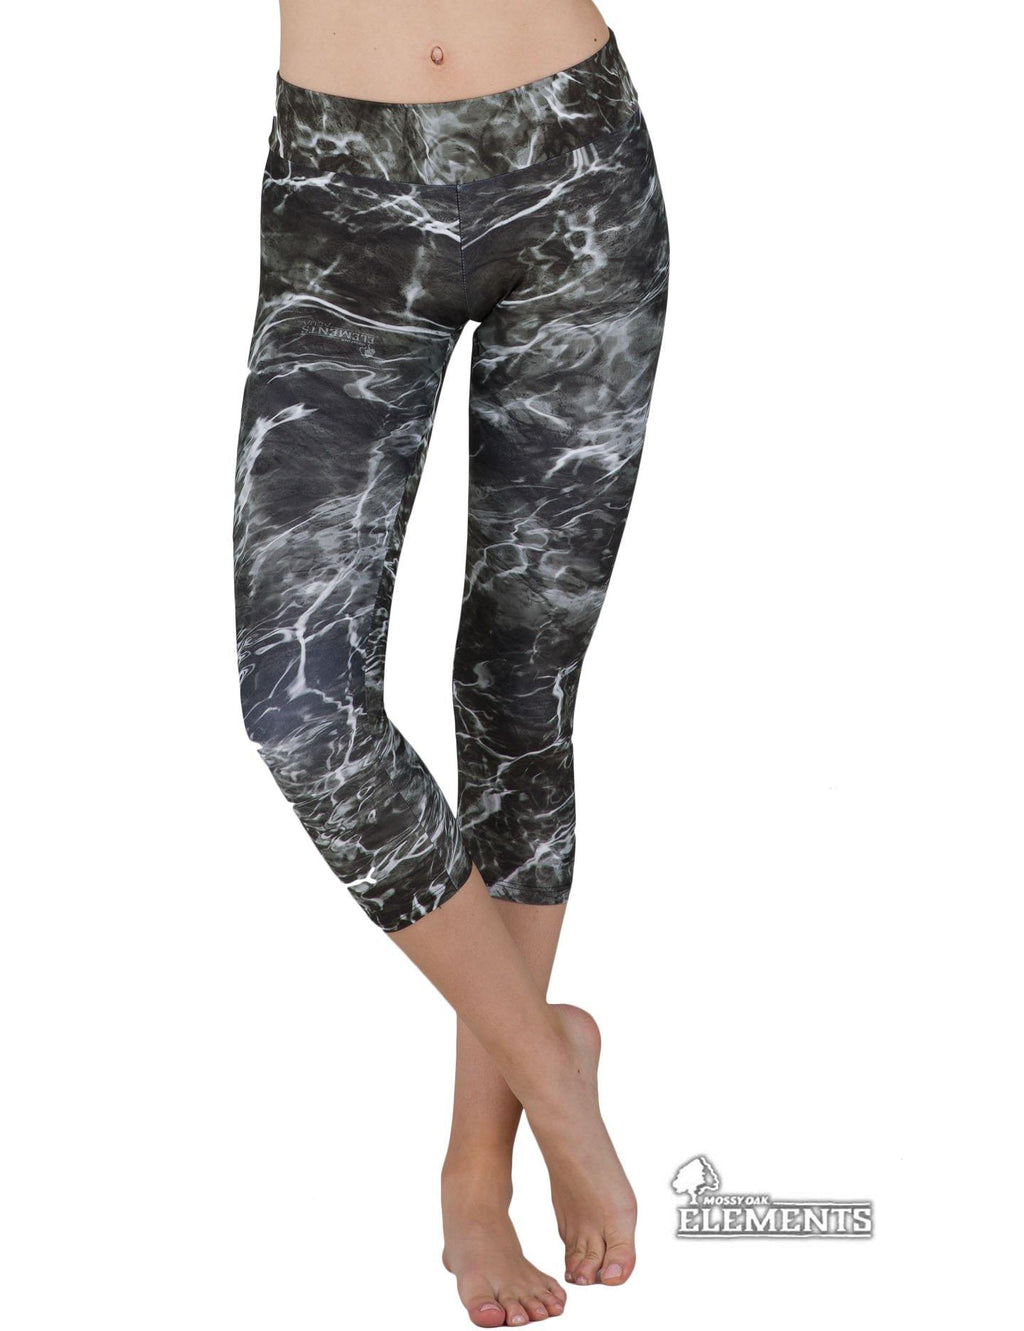 Apsara Leggings Low Waist Capri, Mossy Oak Elements Blacktip